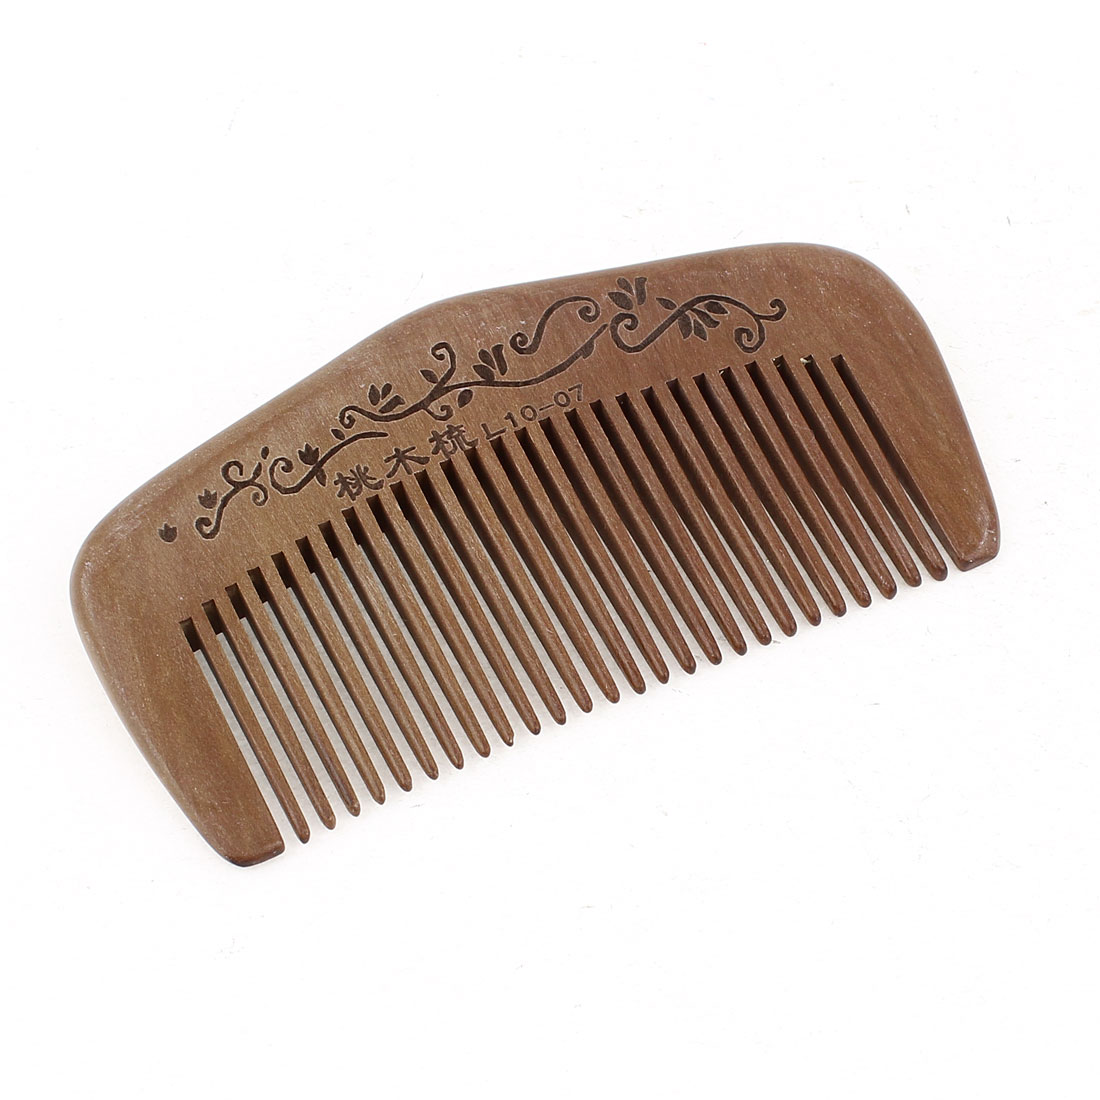 "4"" Length Handwork Natural Carved Wood Hair Care Comb Unisex"